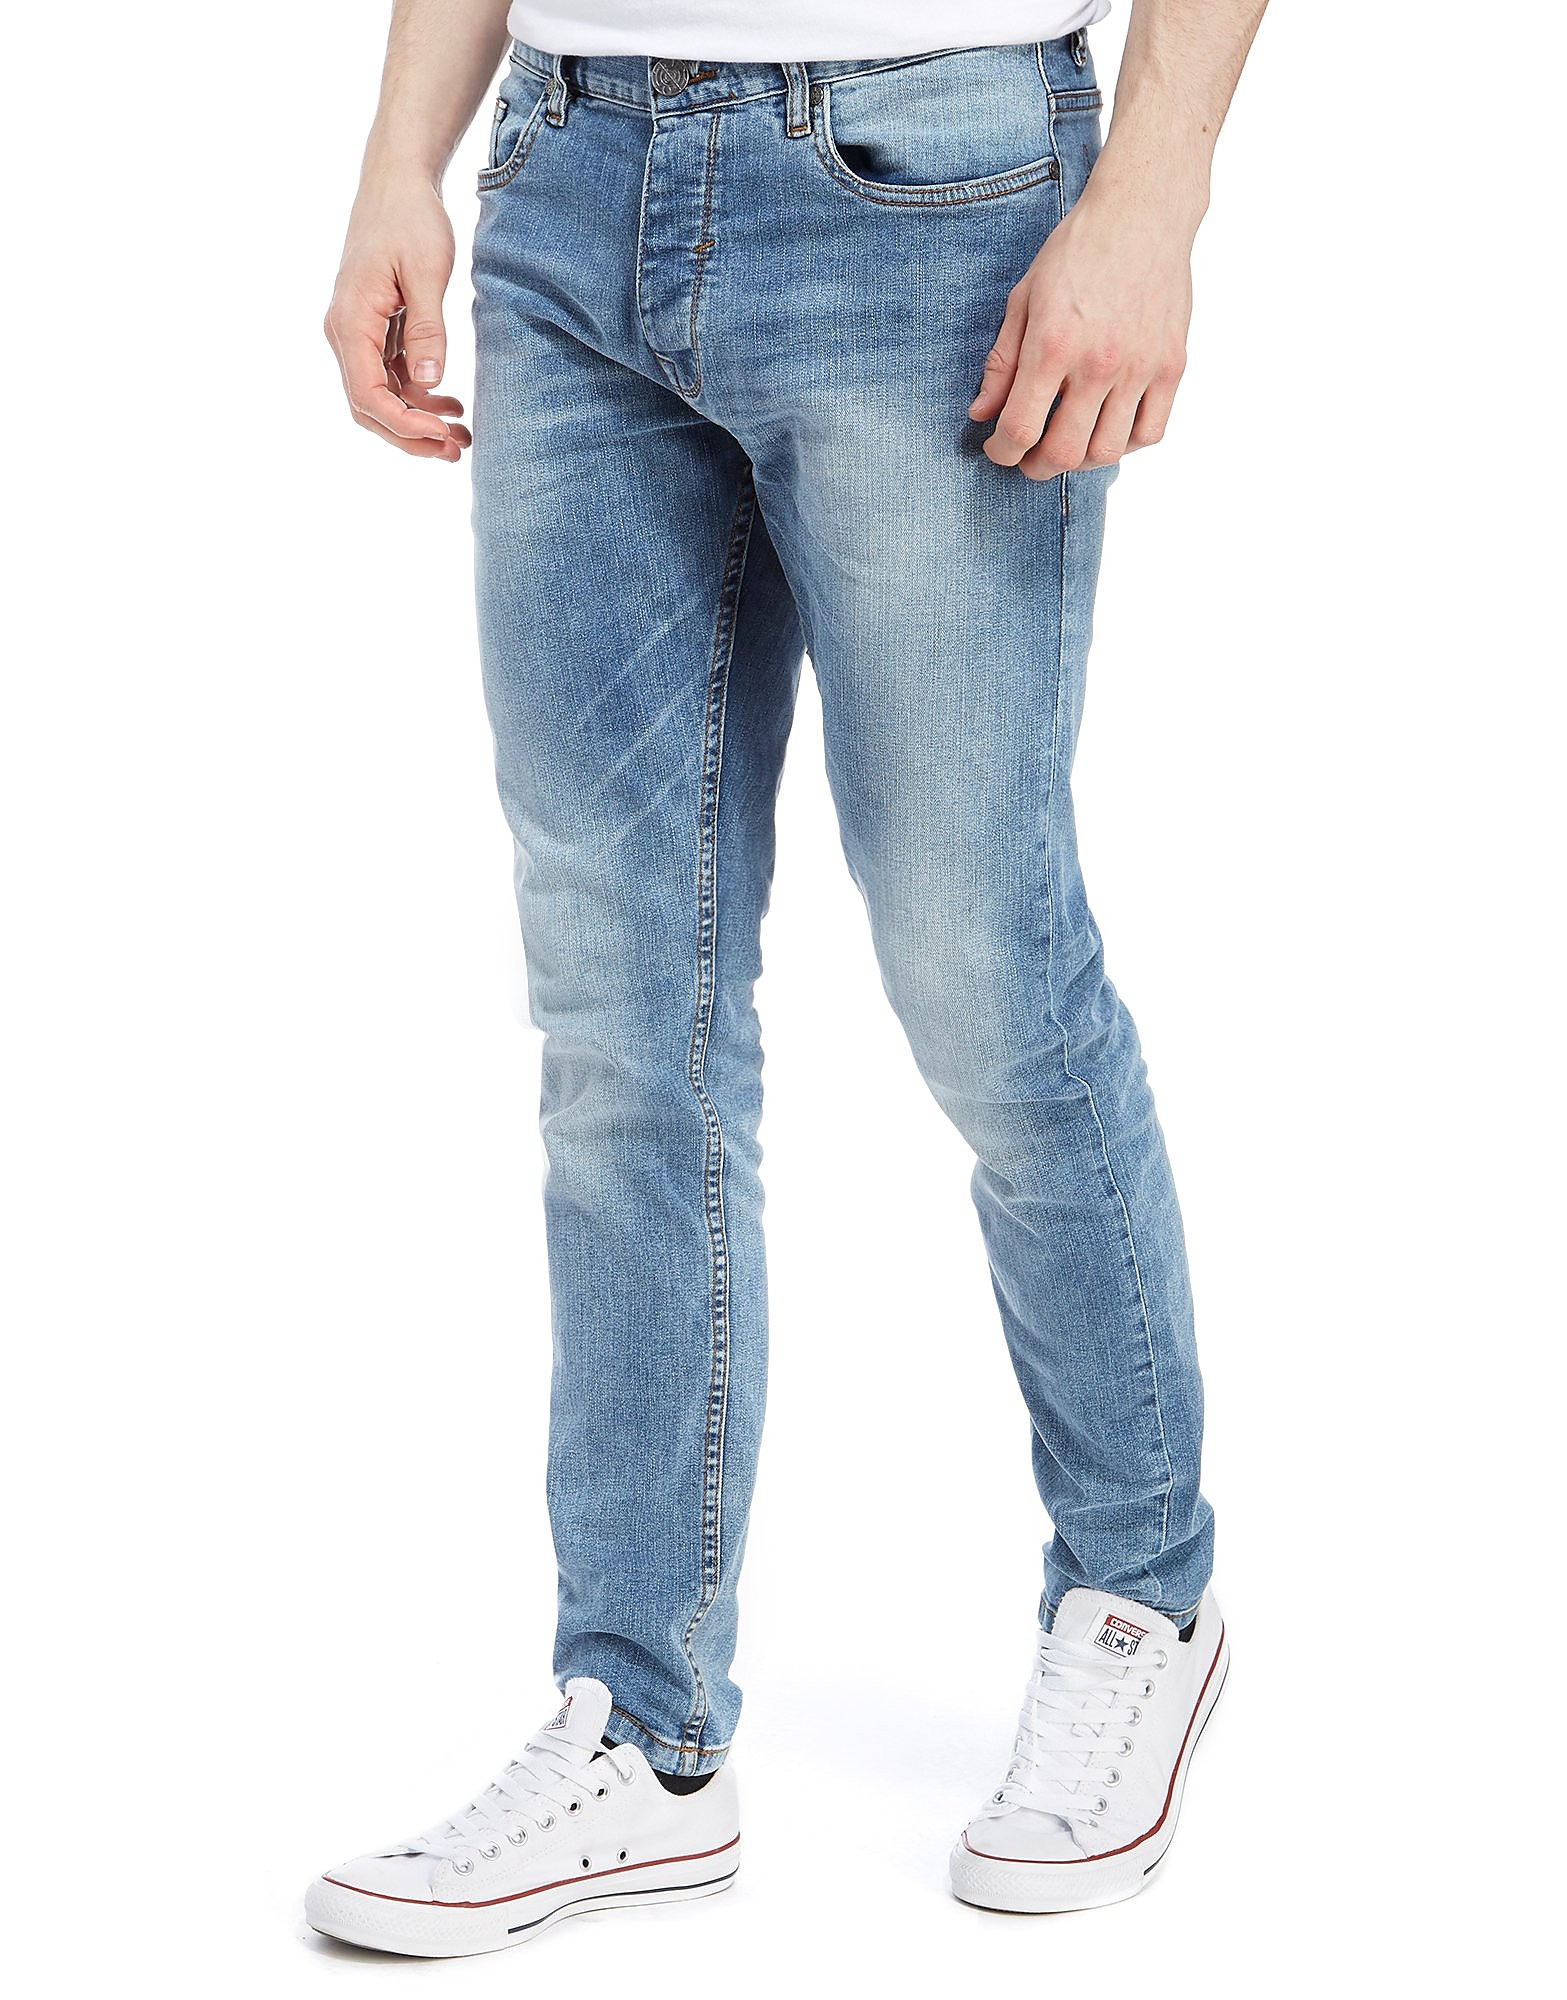 Nanny State Jeans aderenti light wash